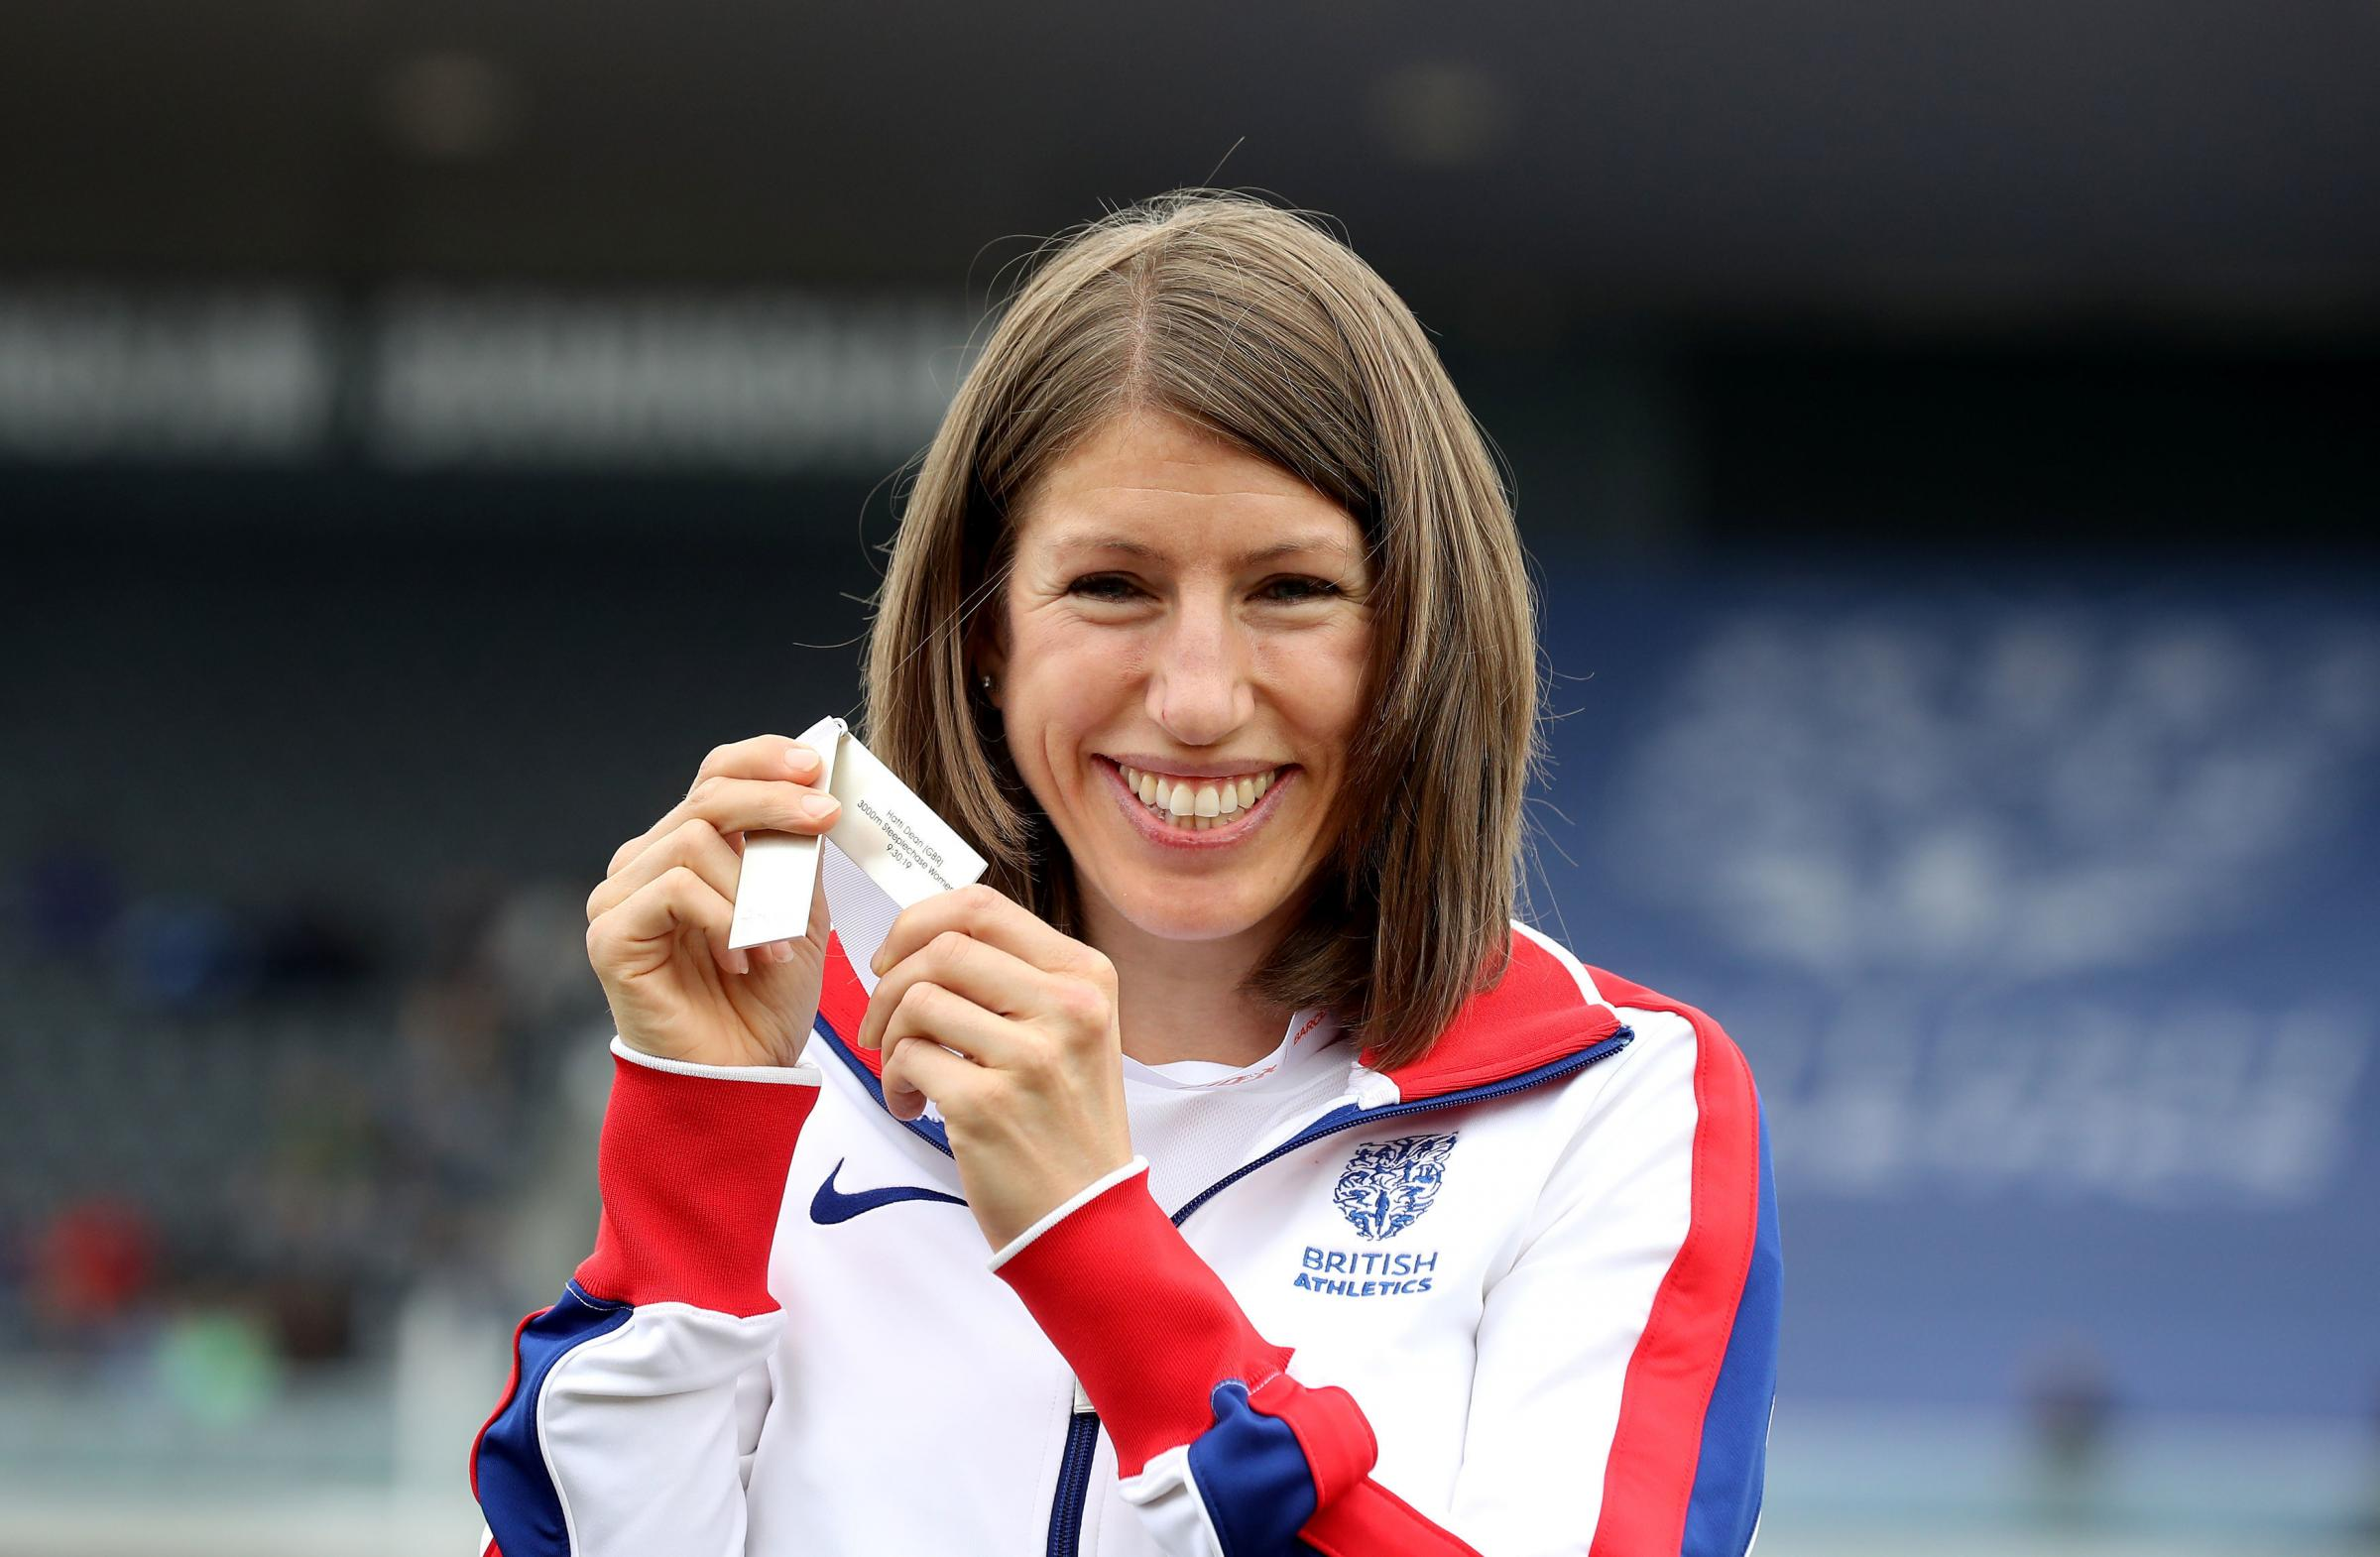 BETTER LATE THAN NEVER: Hatti Archer is all smiles after receiving her upgraded steeplechase silver medal for the 2010 European Championships                                                                                         Picture: Martin Rickett/P